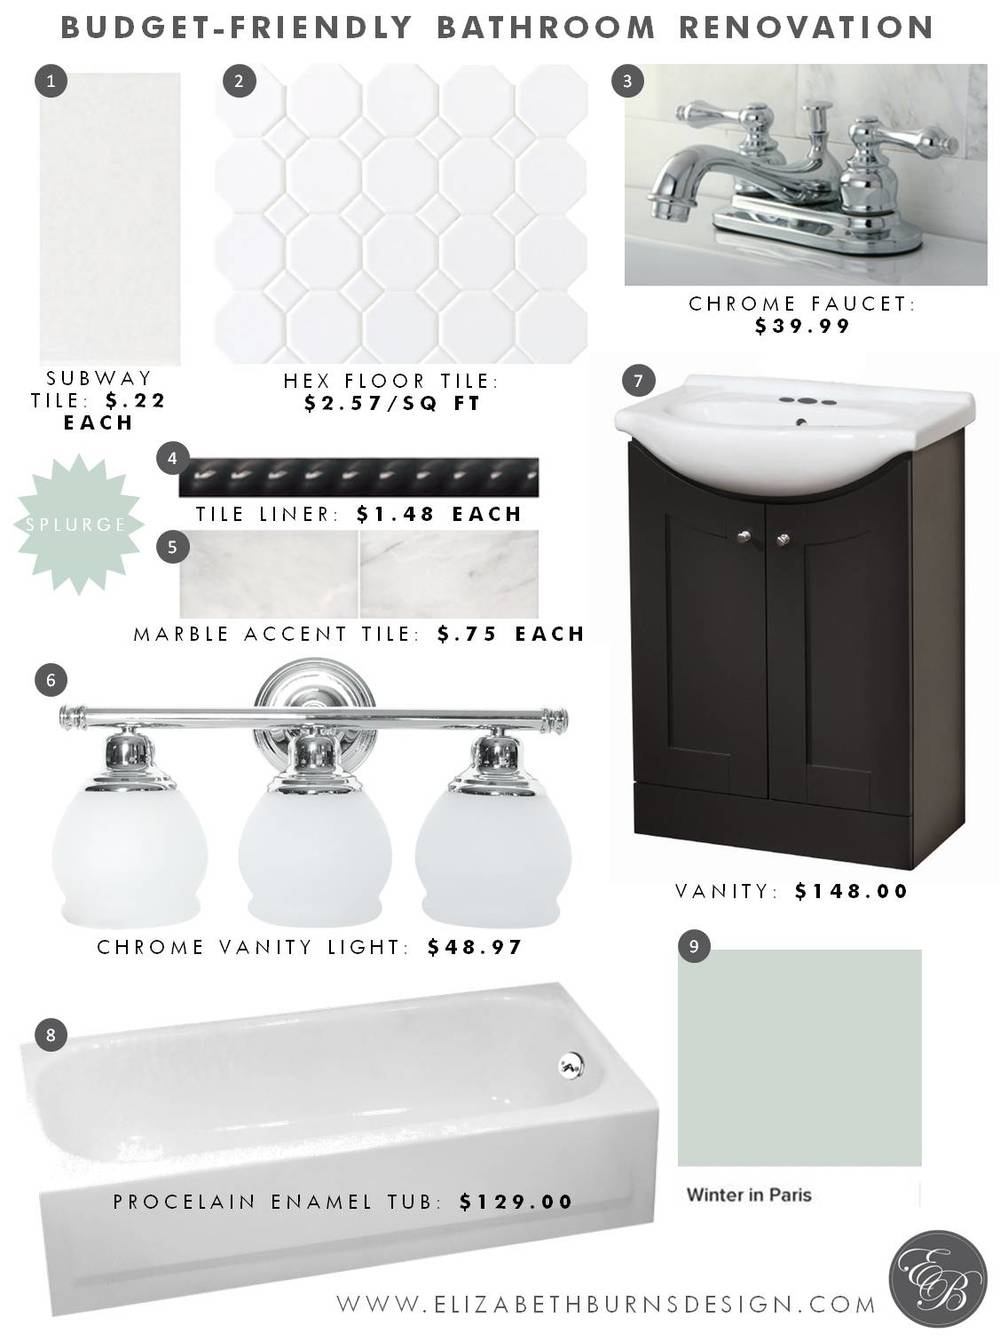 Elizabeth Burns Design | Budget Friendly Bathroom Design - Subway Tile, Chrome Faucet, Chrome Light, Marble Accent, Hex Tile